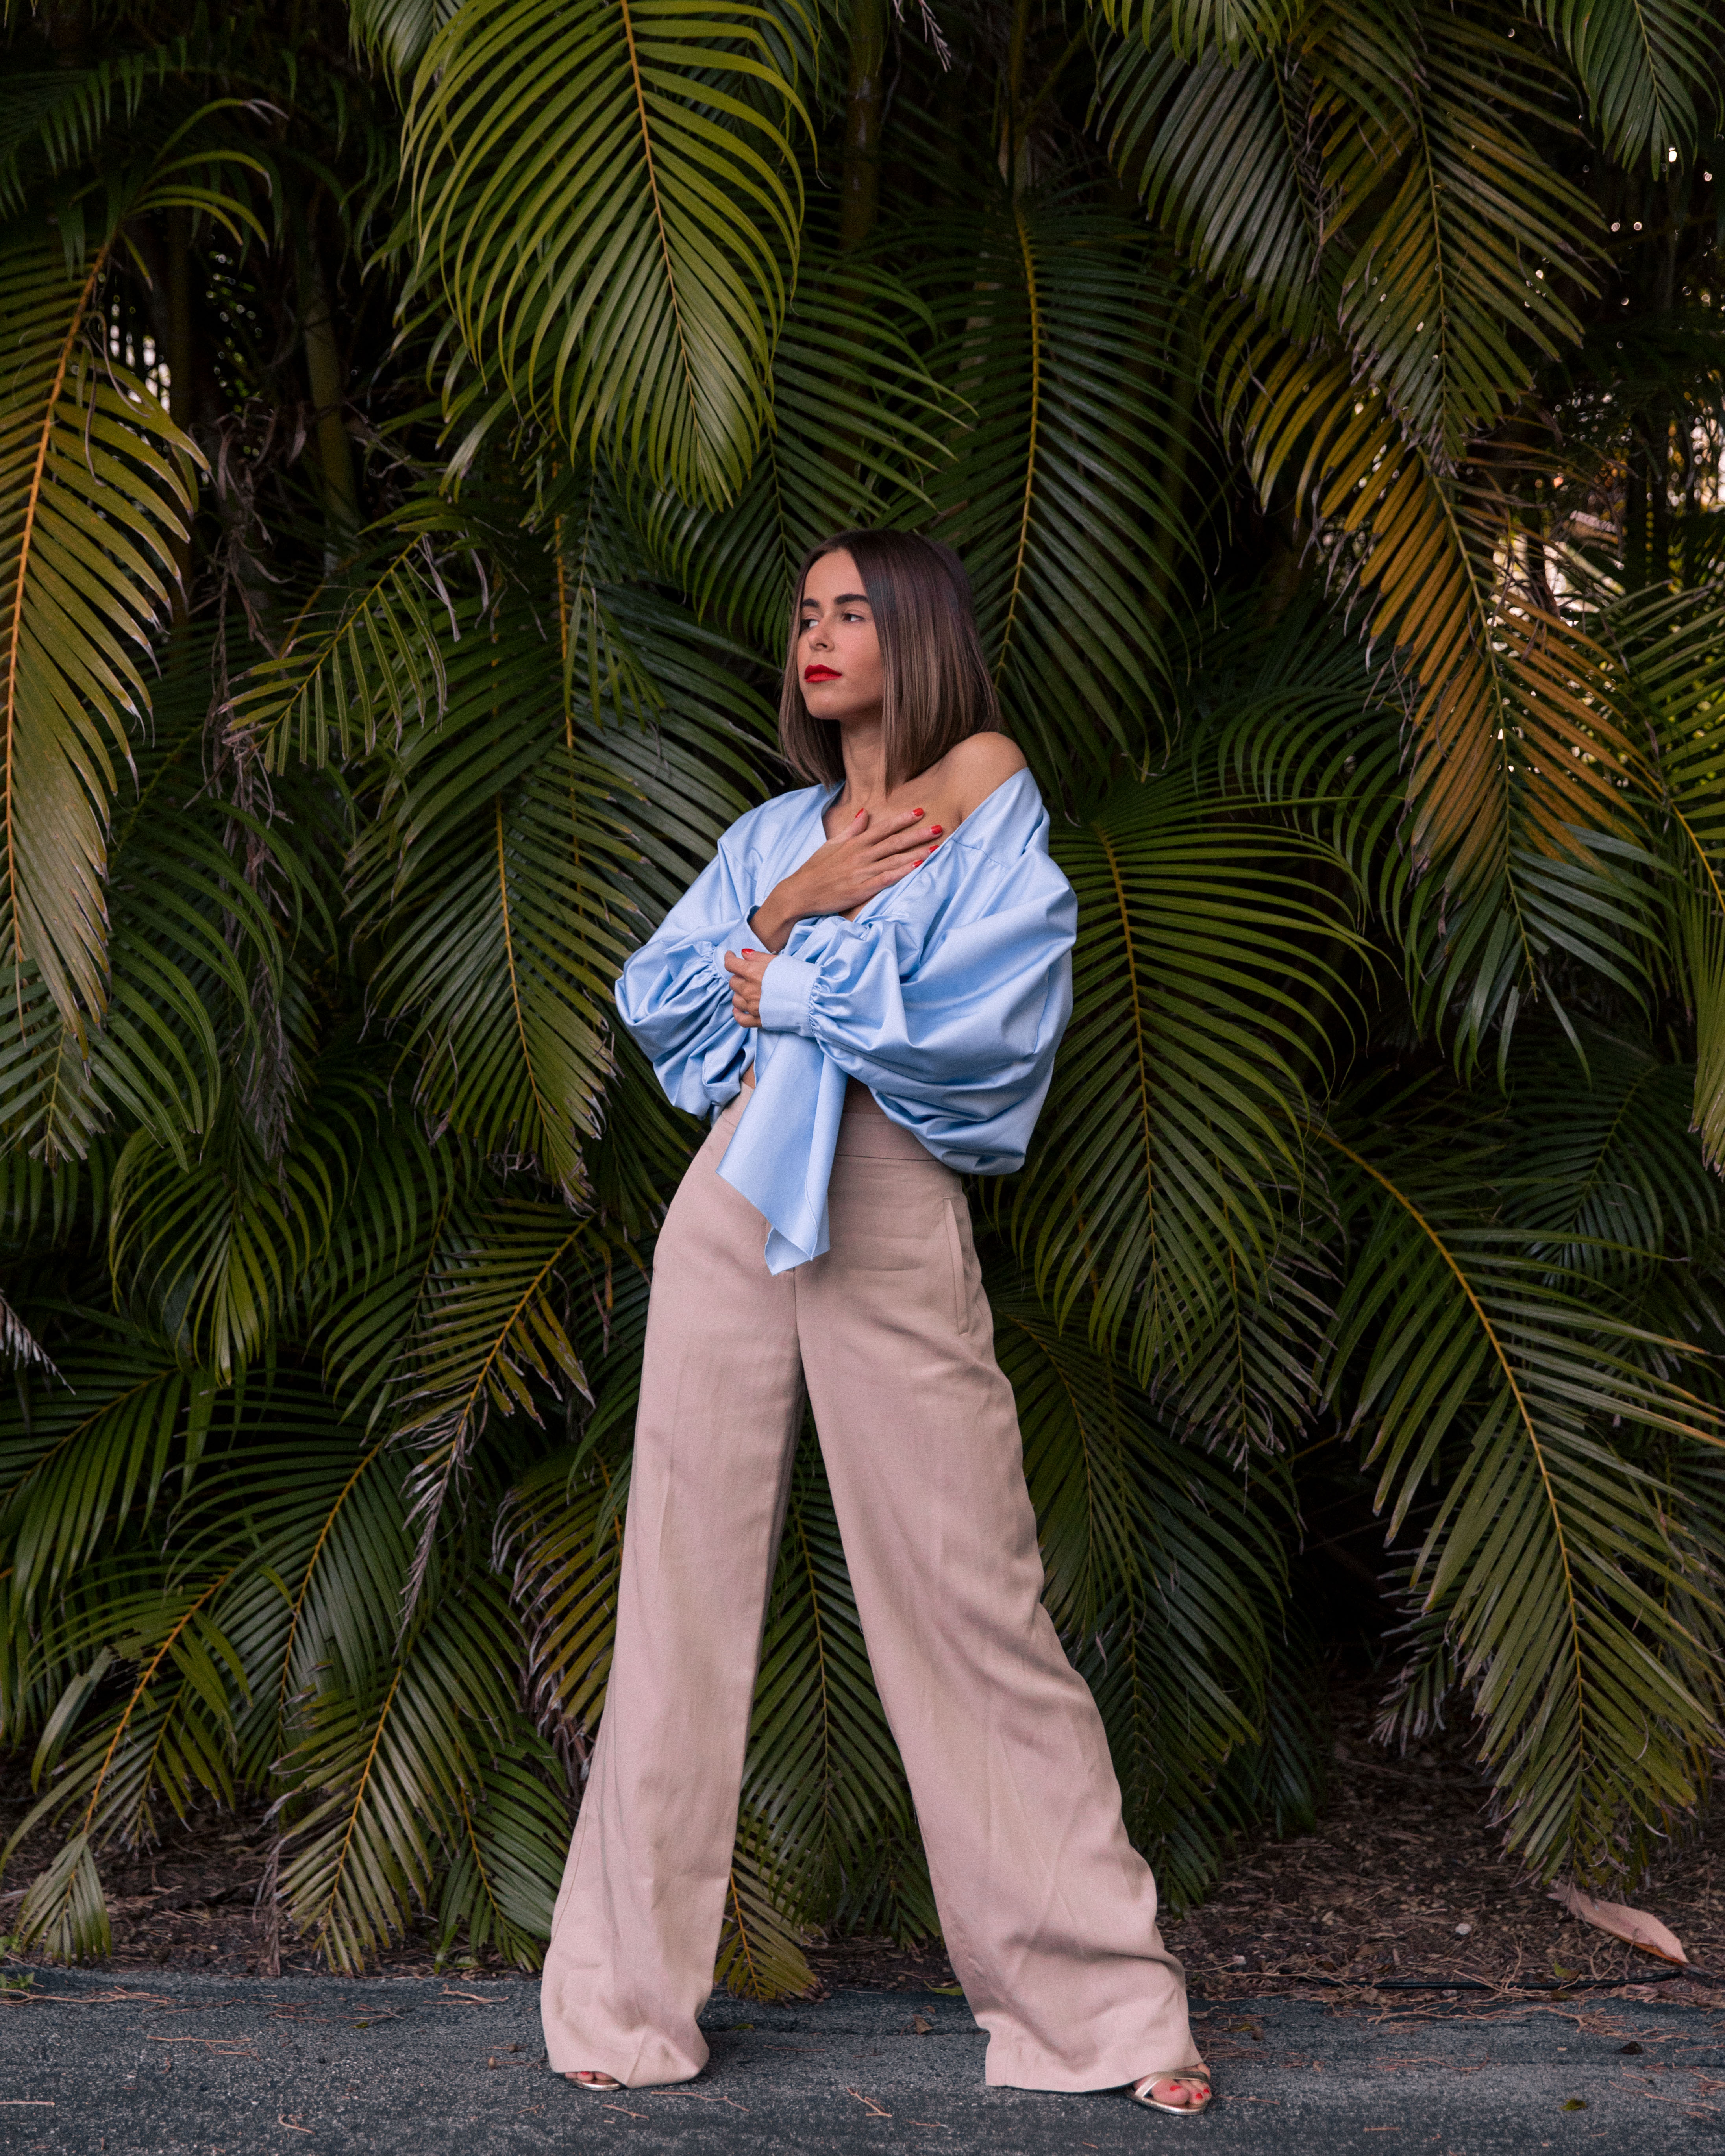 Wearing a blouse by Johanna Ortiz, Style Blogger Stephanie Hill from The Style Bungalow shares her top 5 muses this month